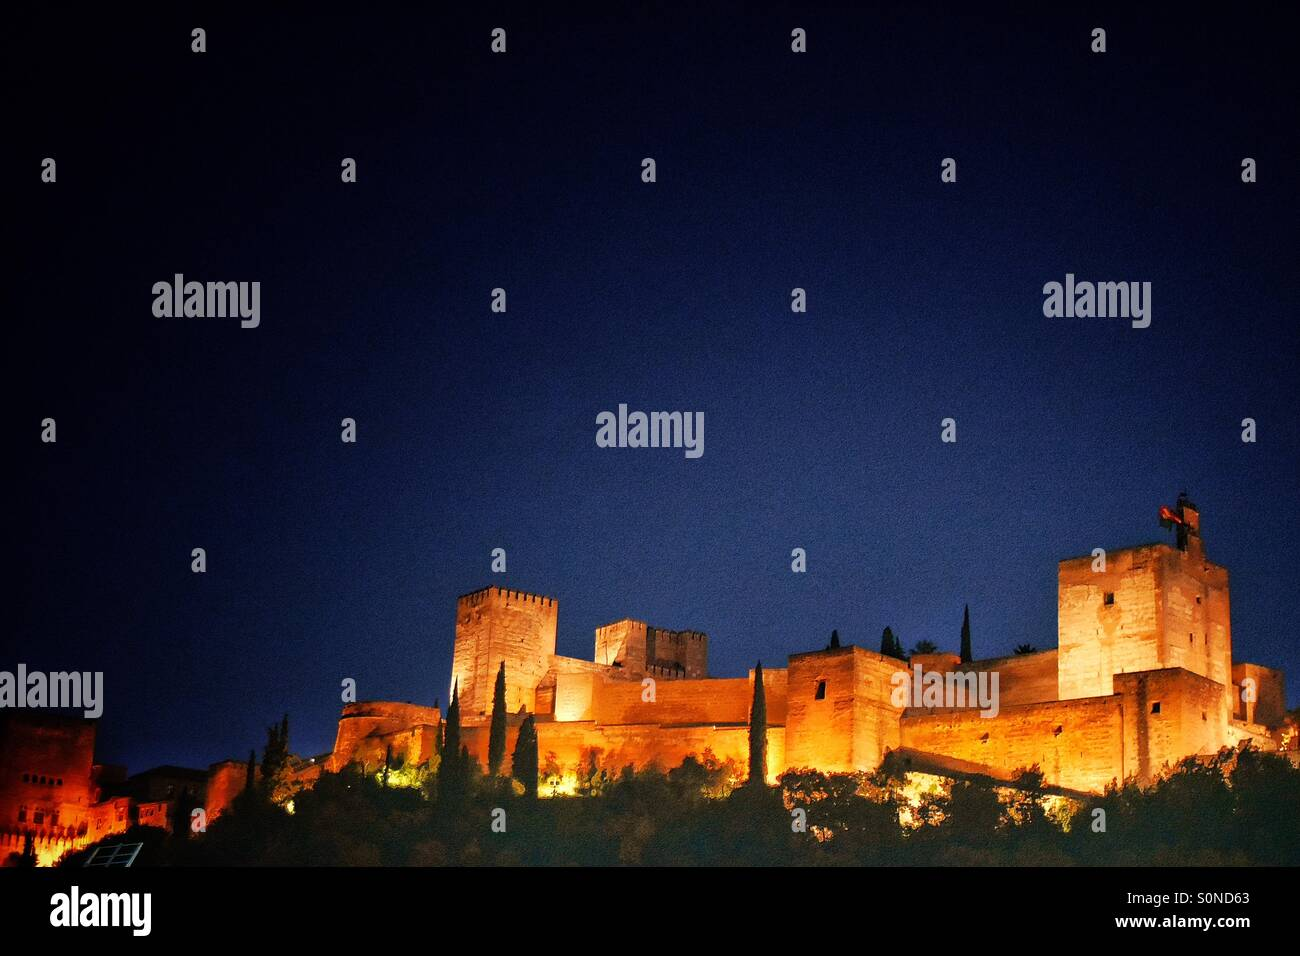 Alhambra, Granada, Spain. insights from Plaza de los Carvajales - Stock Image